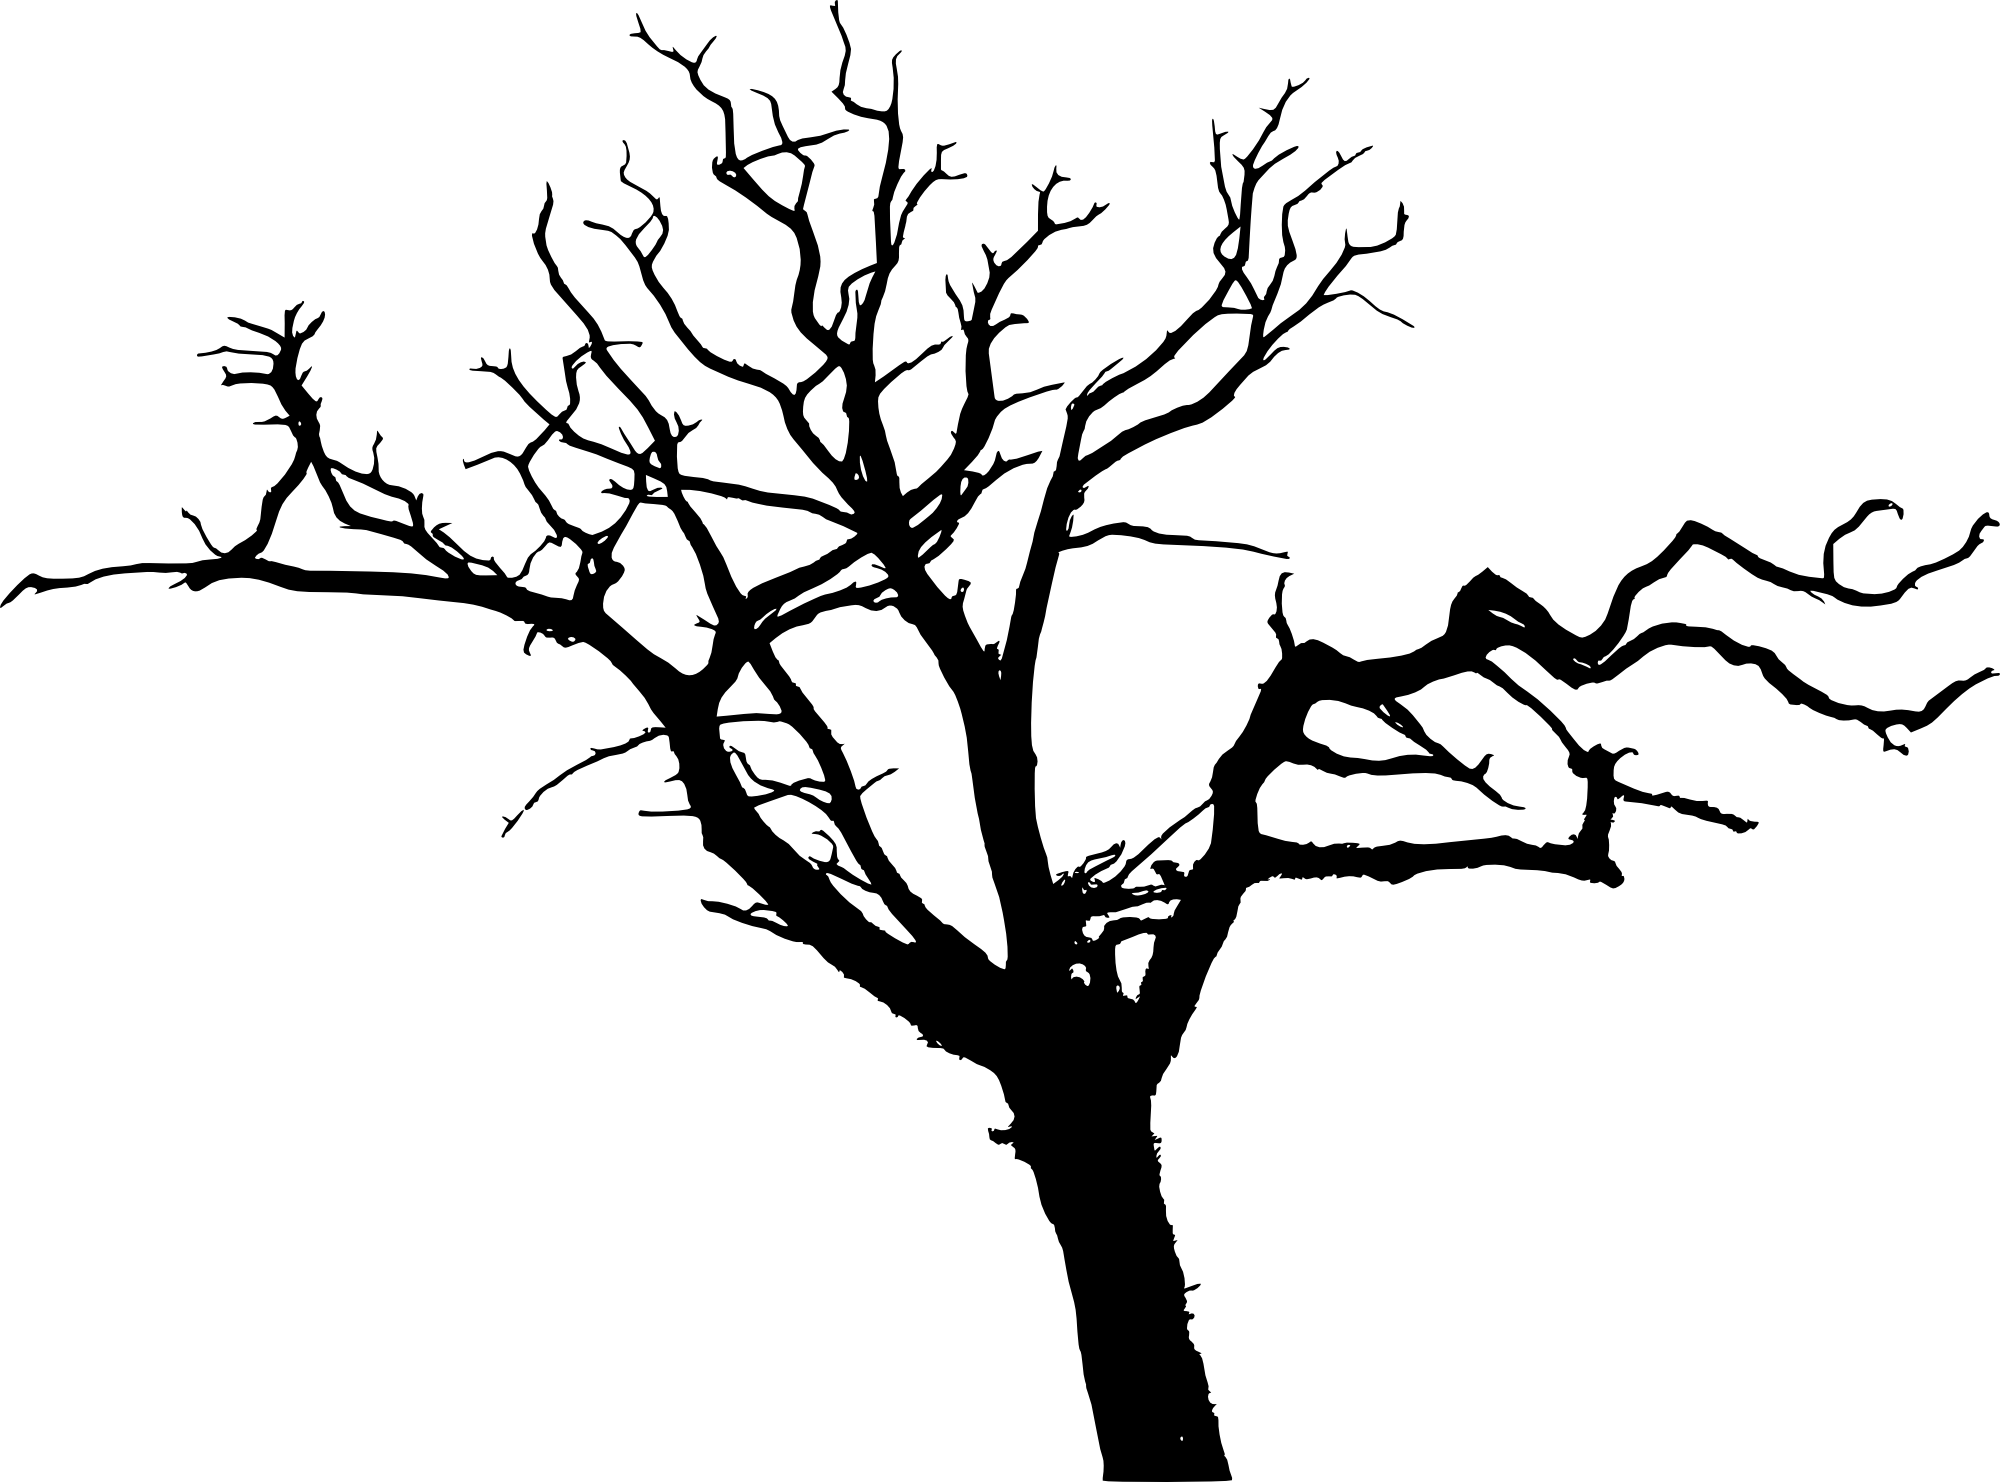 Port drawing tree. Silhouette at getdrawings com